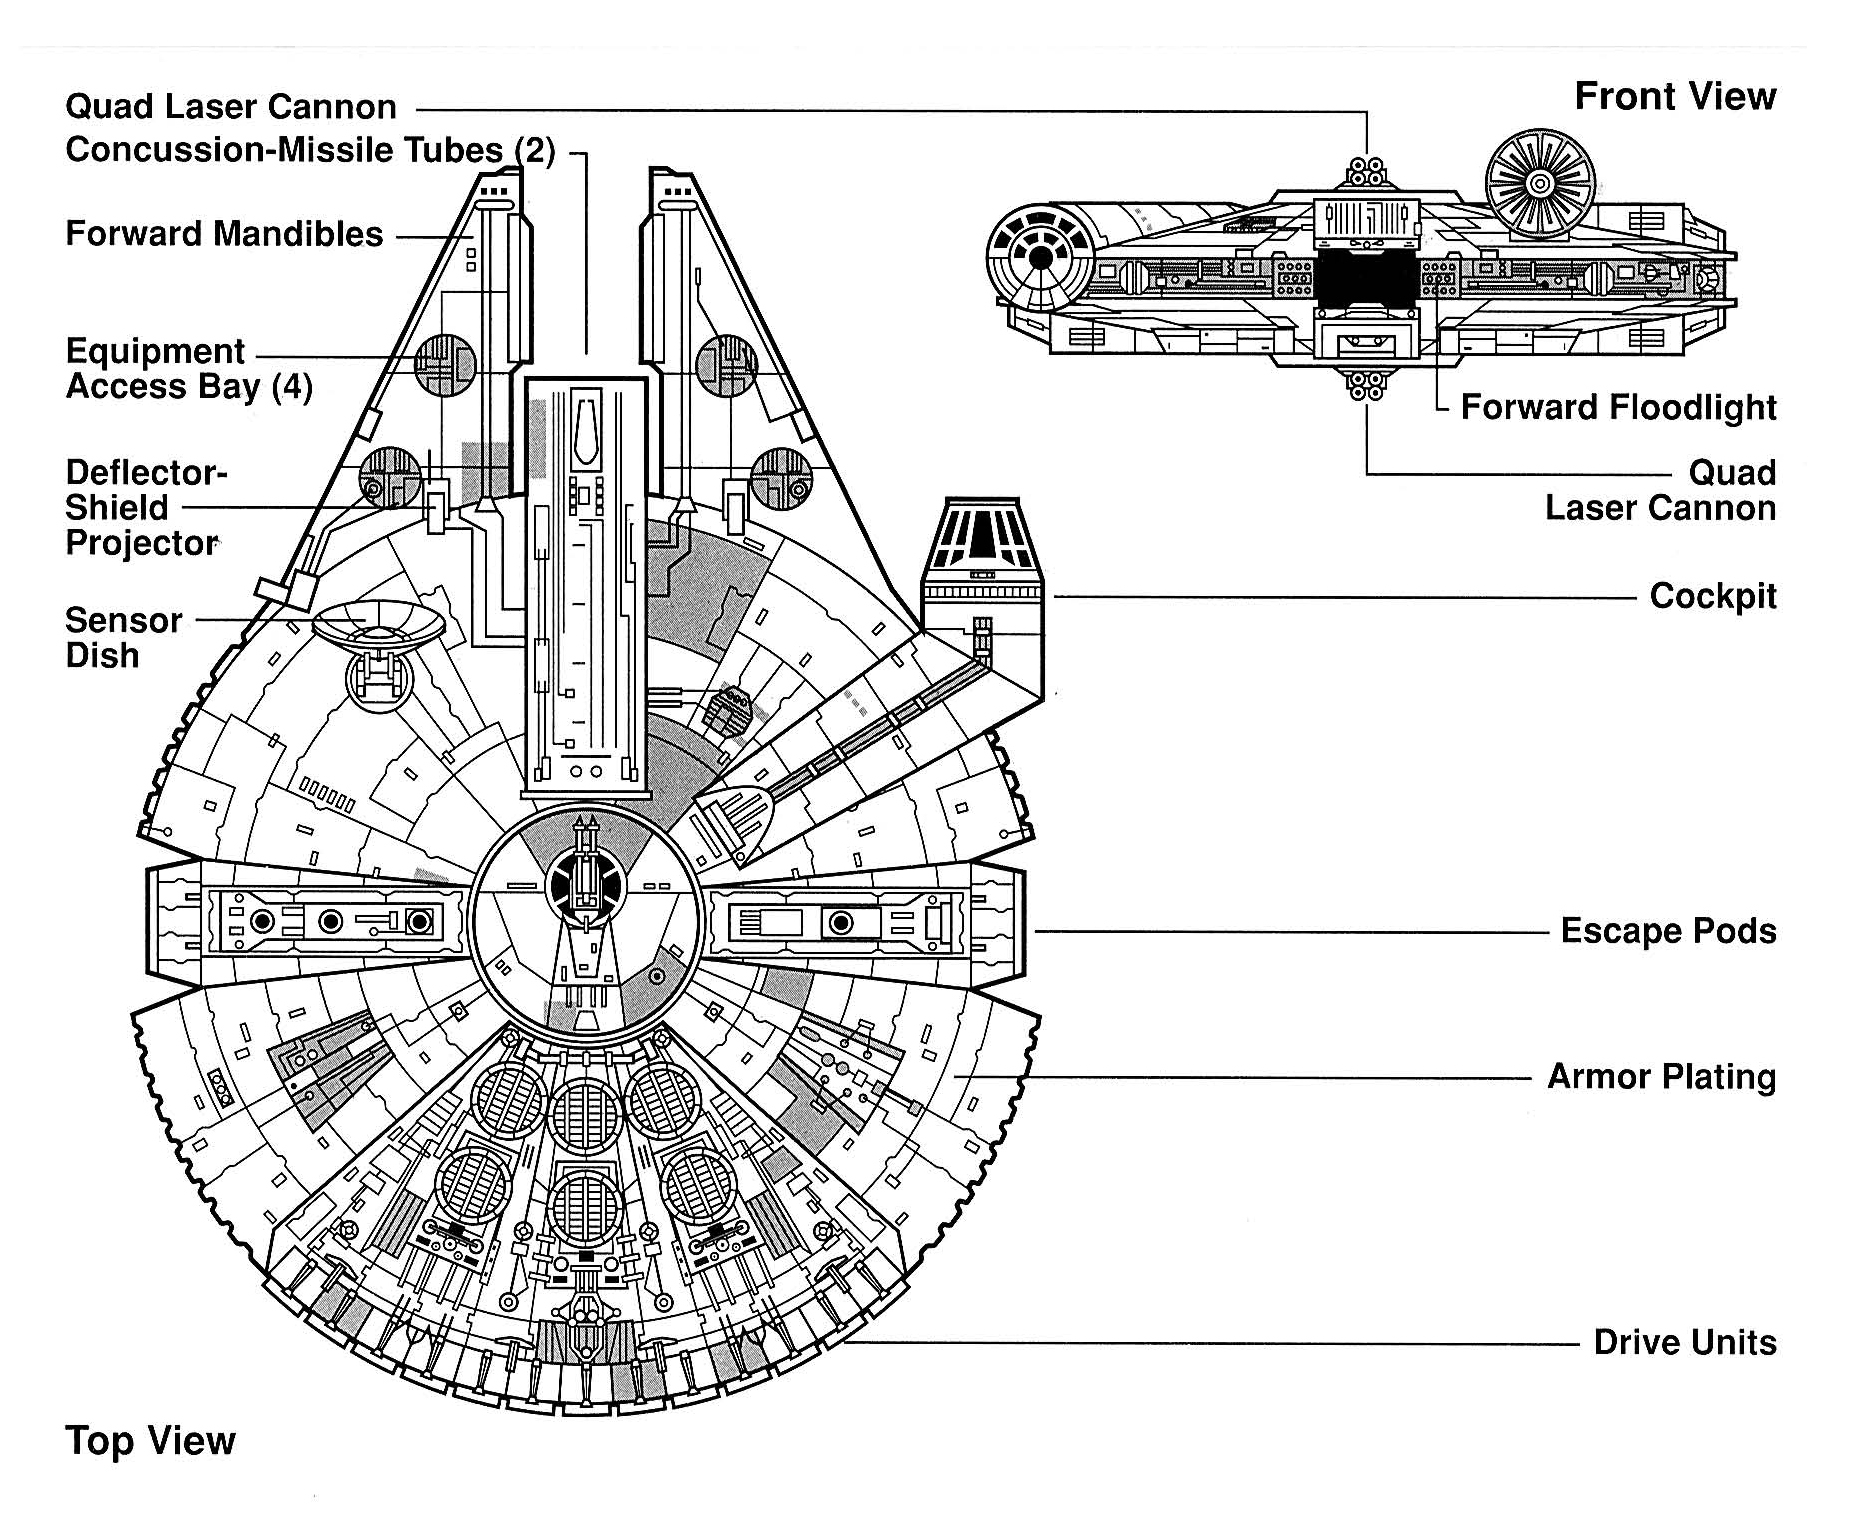 Displaying images for millenium falcon cockpit wallpaper - The Cockpit Should Be Farther Forward Http Vignette1 Wikia Nocookie Net Starwars Images B B8 Falcon_egvv Jpg Revision Latest Cb 20081001132210